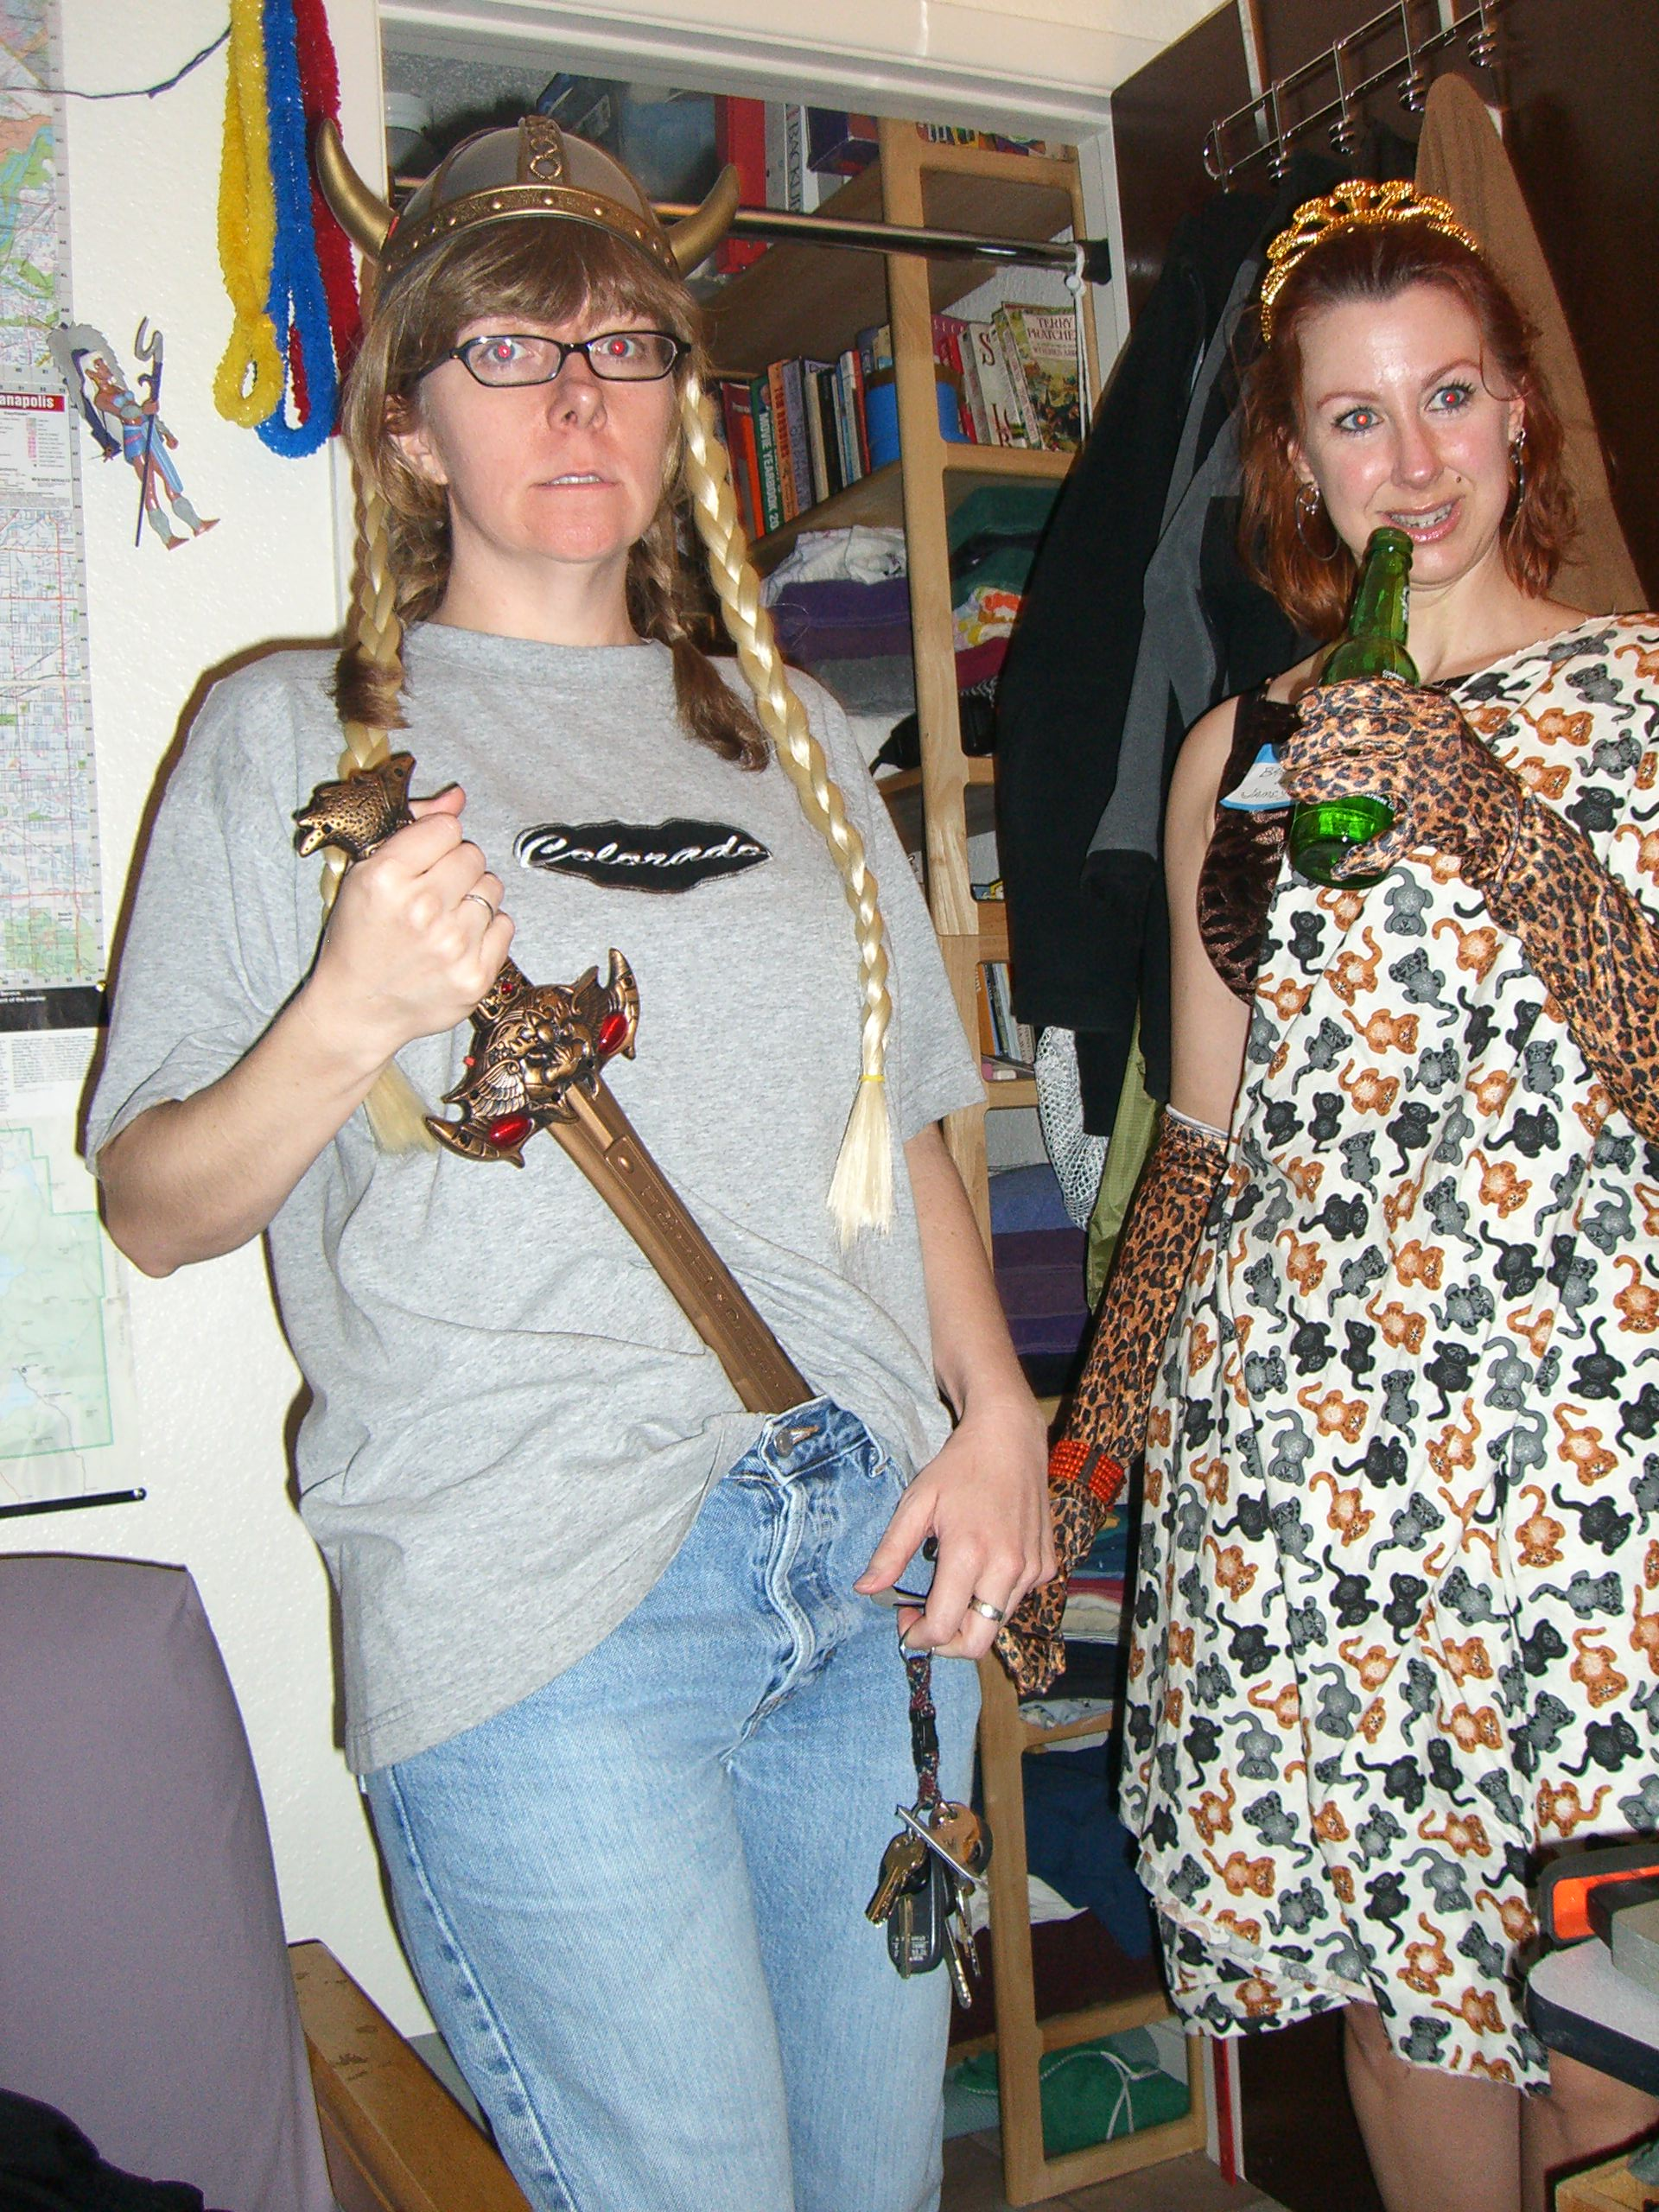 A in a viking helmet with braids and J in animal prints